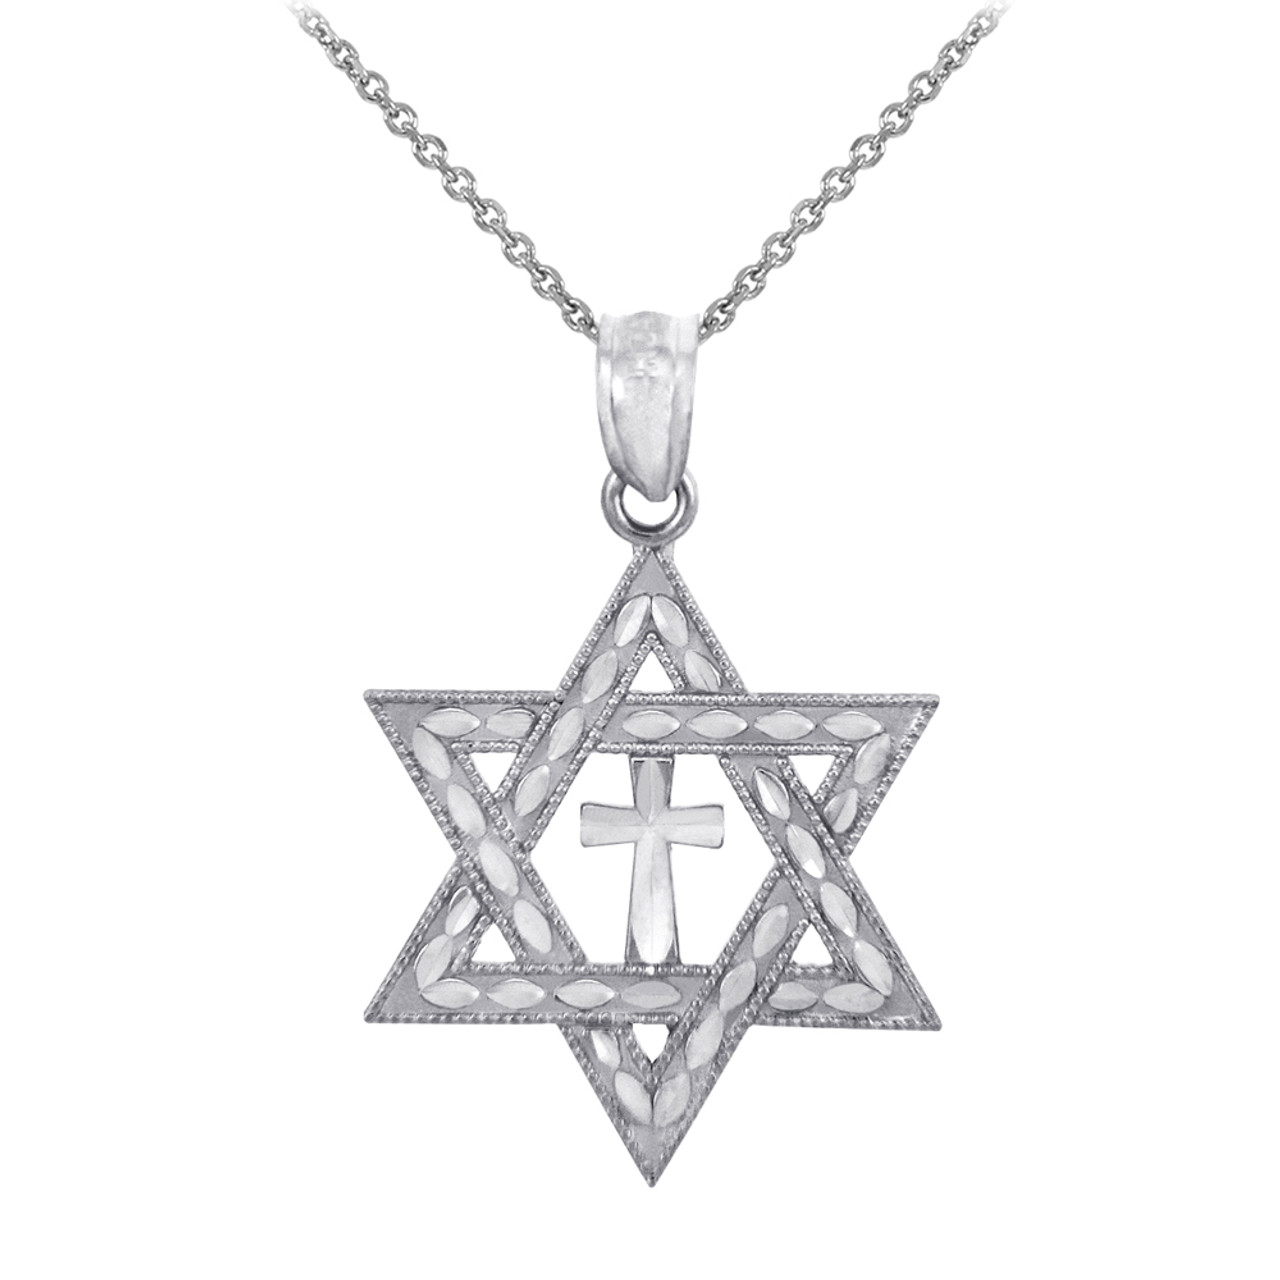 silver star jewish singles A star of david pendant makes a beautiful gift to anyone who is interested in jewish jewelry, messianic jewish jewelry, or who wants to show support of christianity's jewish roots pendants with jewish symbols come in sterling silver, 14k gold, roman glass, semi-precious stones and gold-fill.